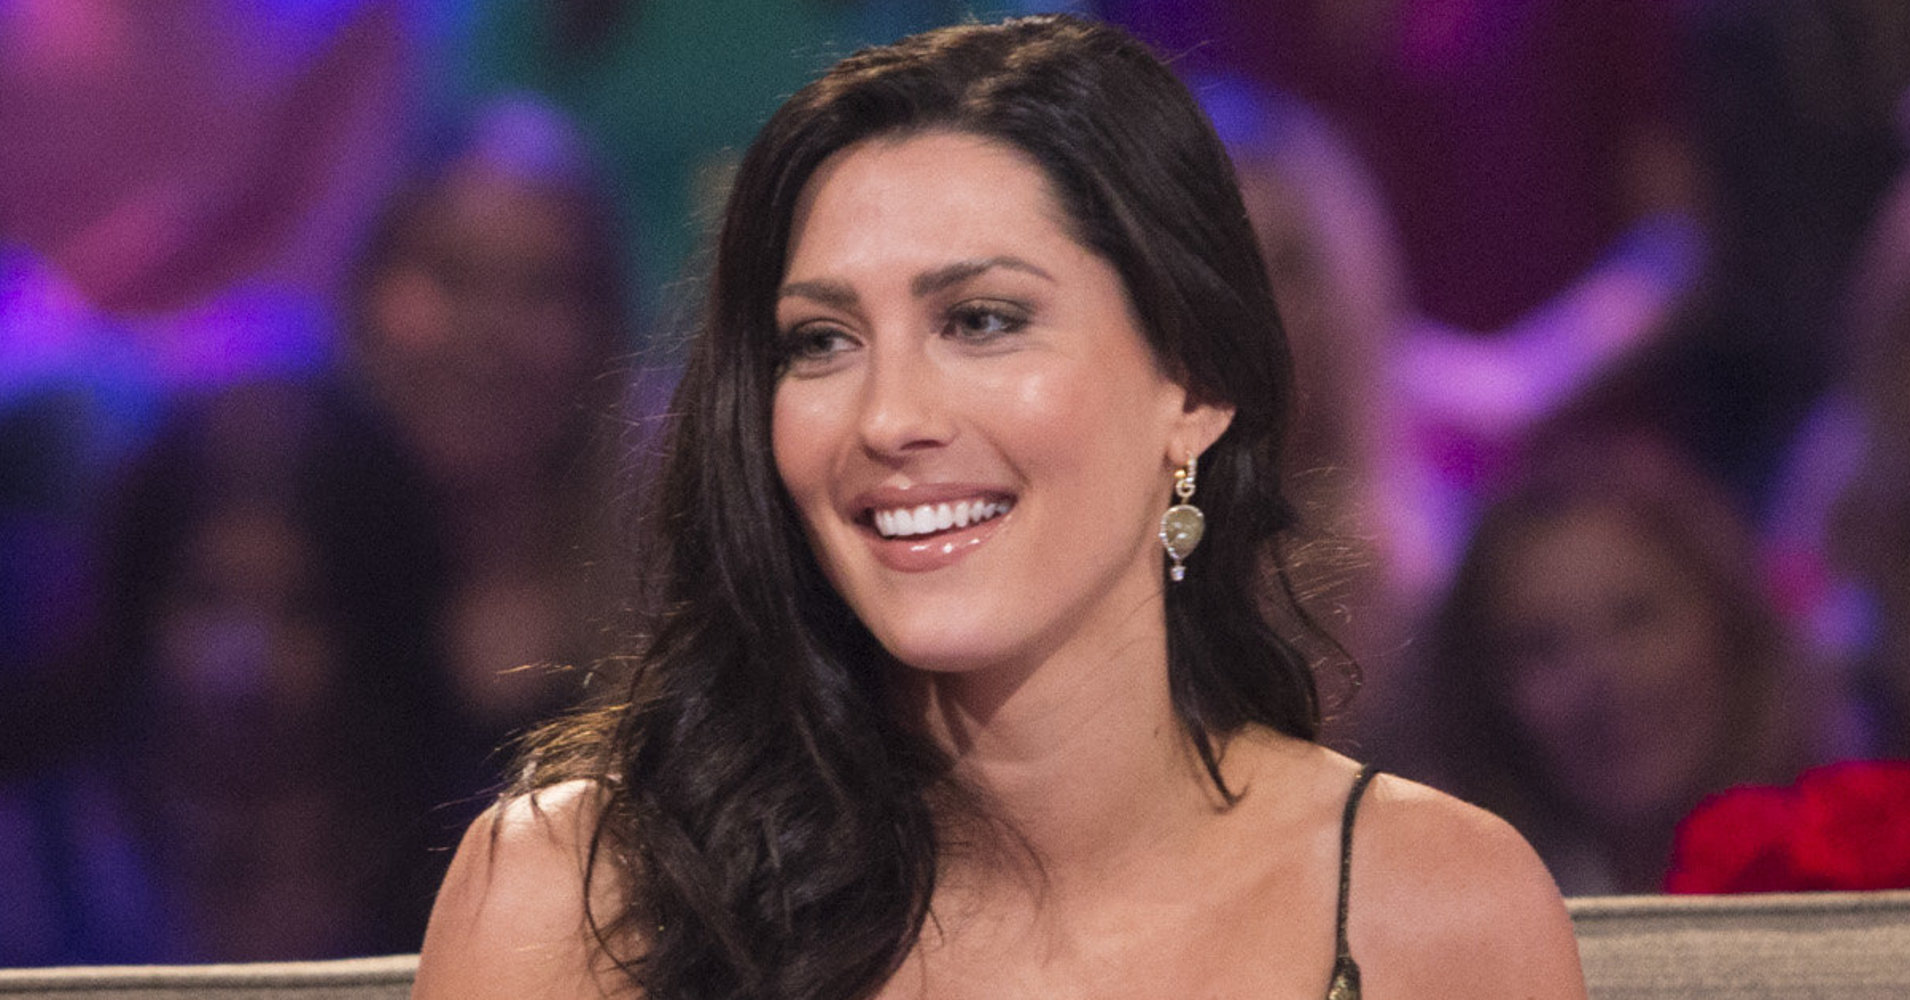 Becca Kufrin, Dumped Hard On 'The Bachelor,' Is New 'Bachelorette'